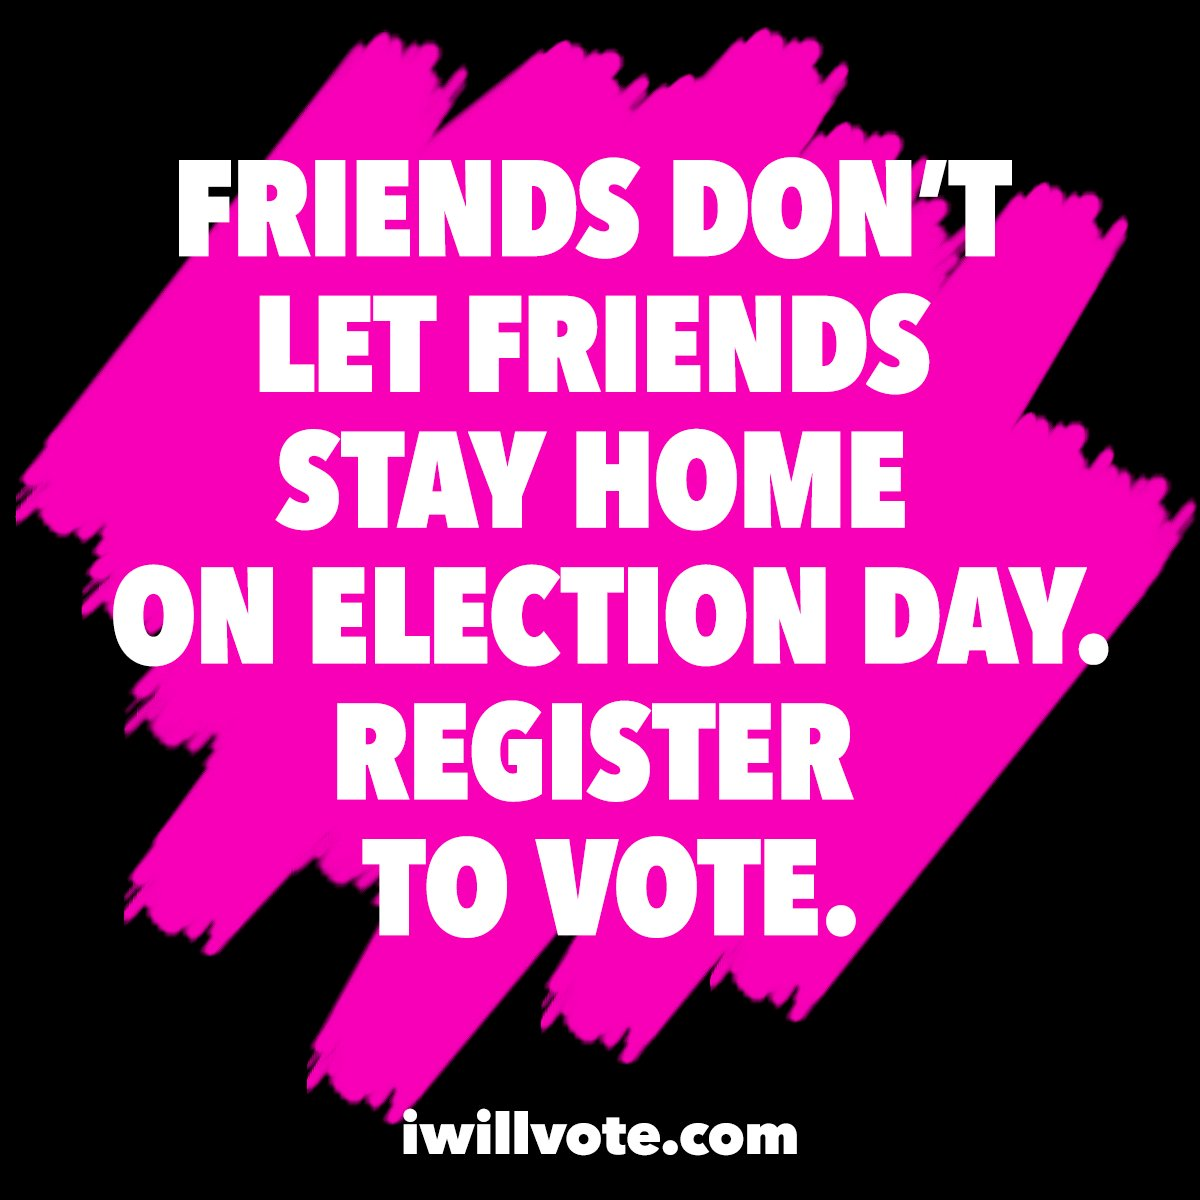 I'm registered to vote! Are you? Make sure you're registered at https://t.co/9kSqE16kjx https://t.co/bHcabfamWO